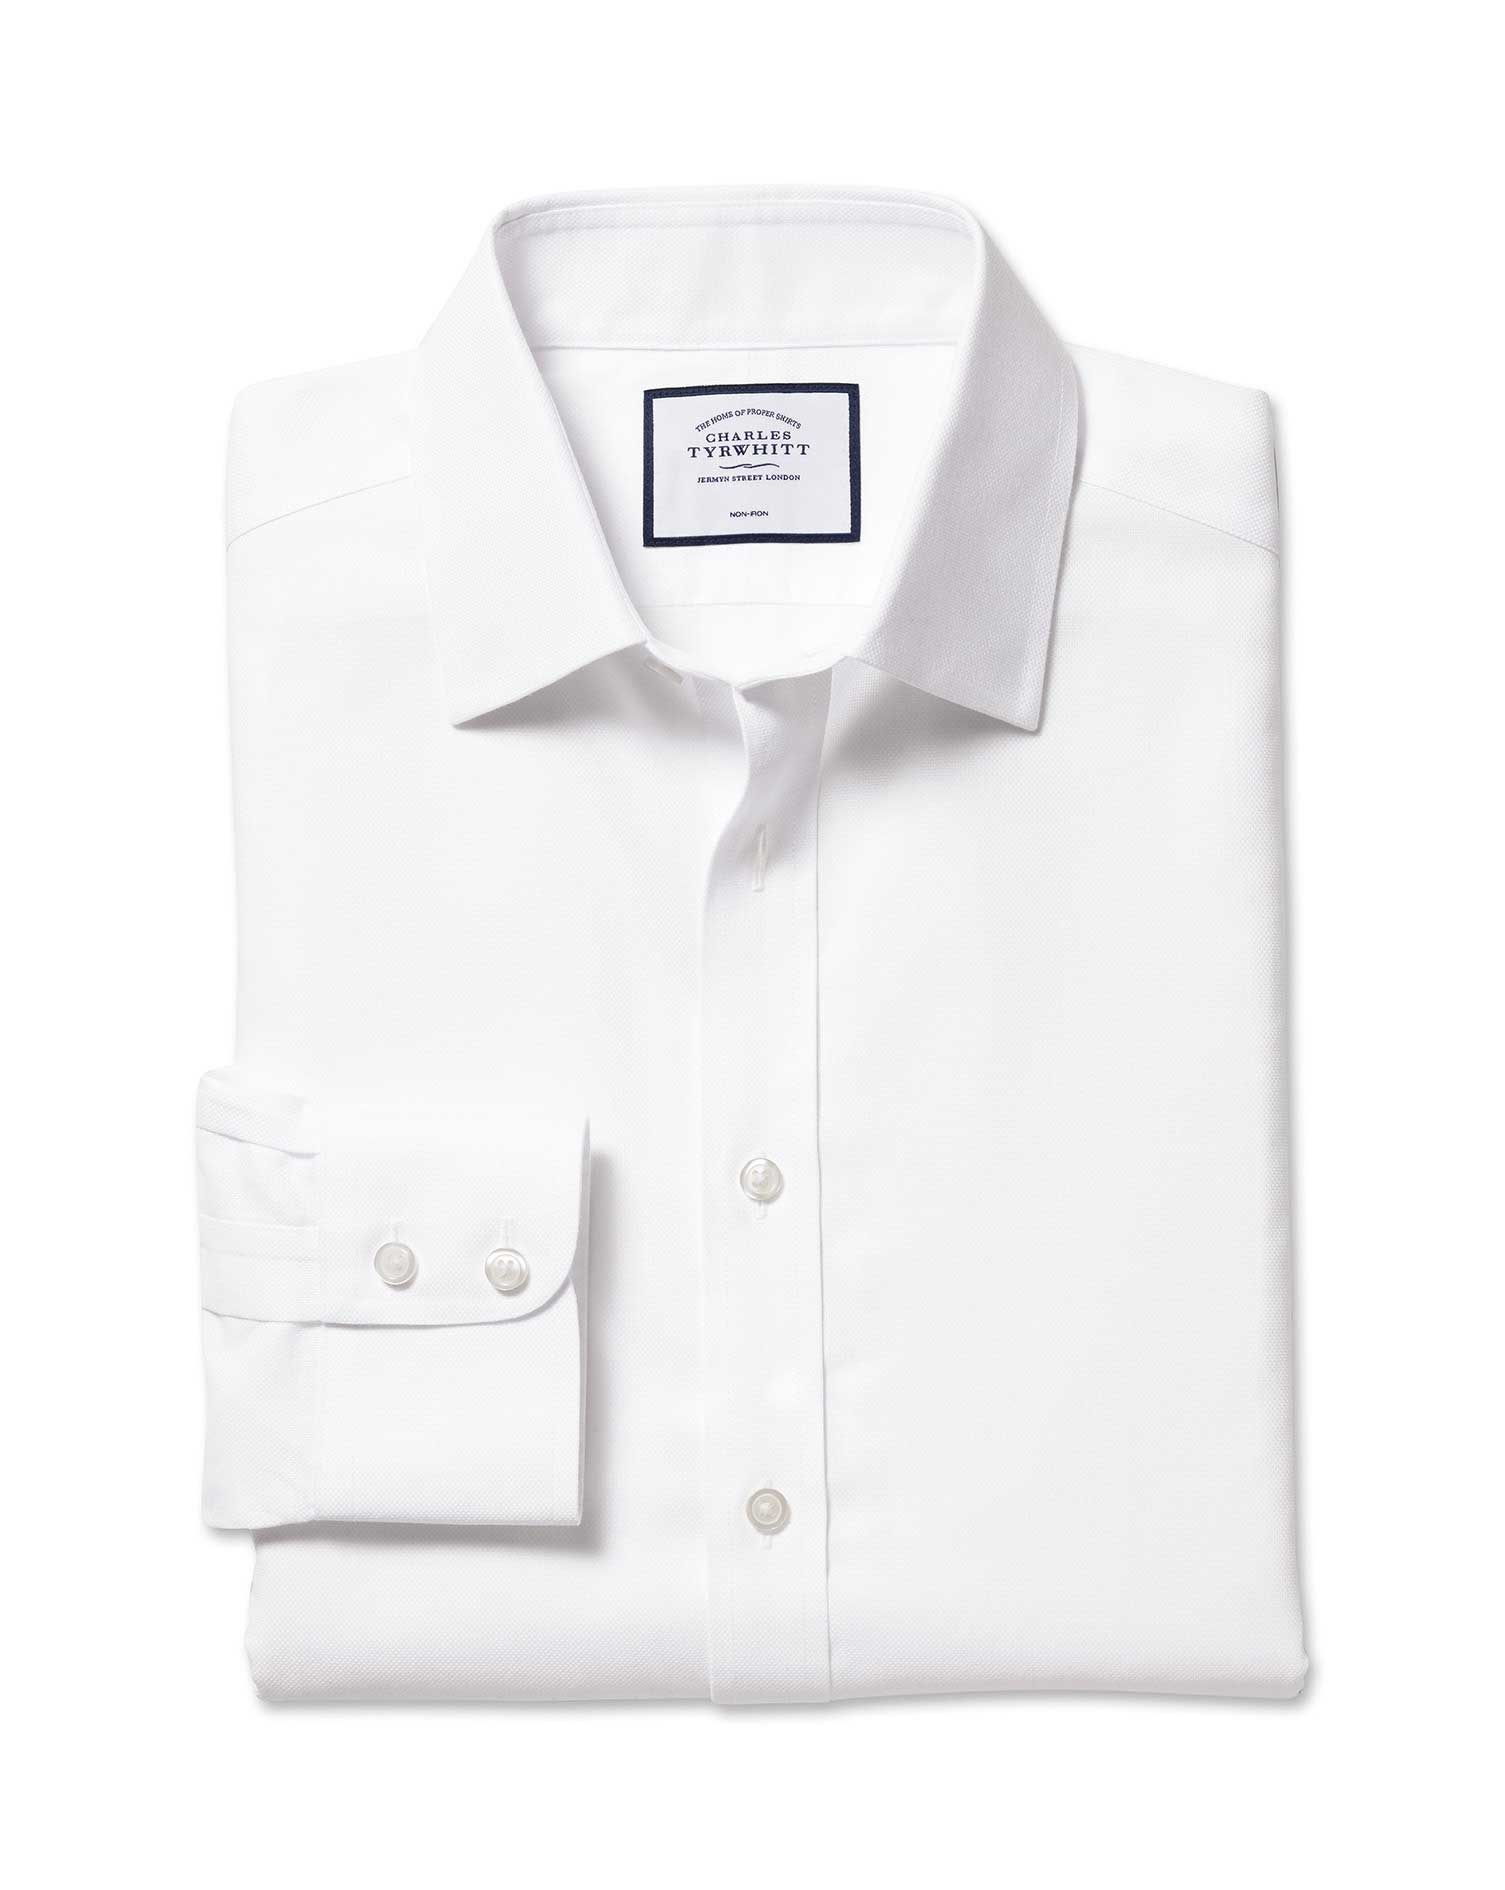 Extra Slim Fit Non-Iron Royal Panama White Cotton Formal Shirt Single Cuff Size 16/35 by Charles Tyr